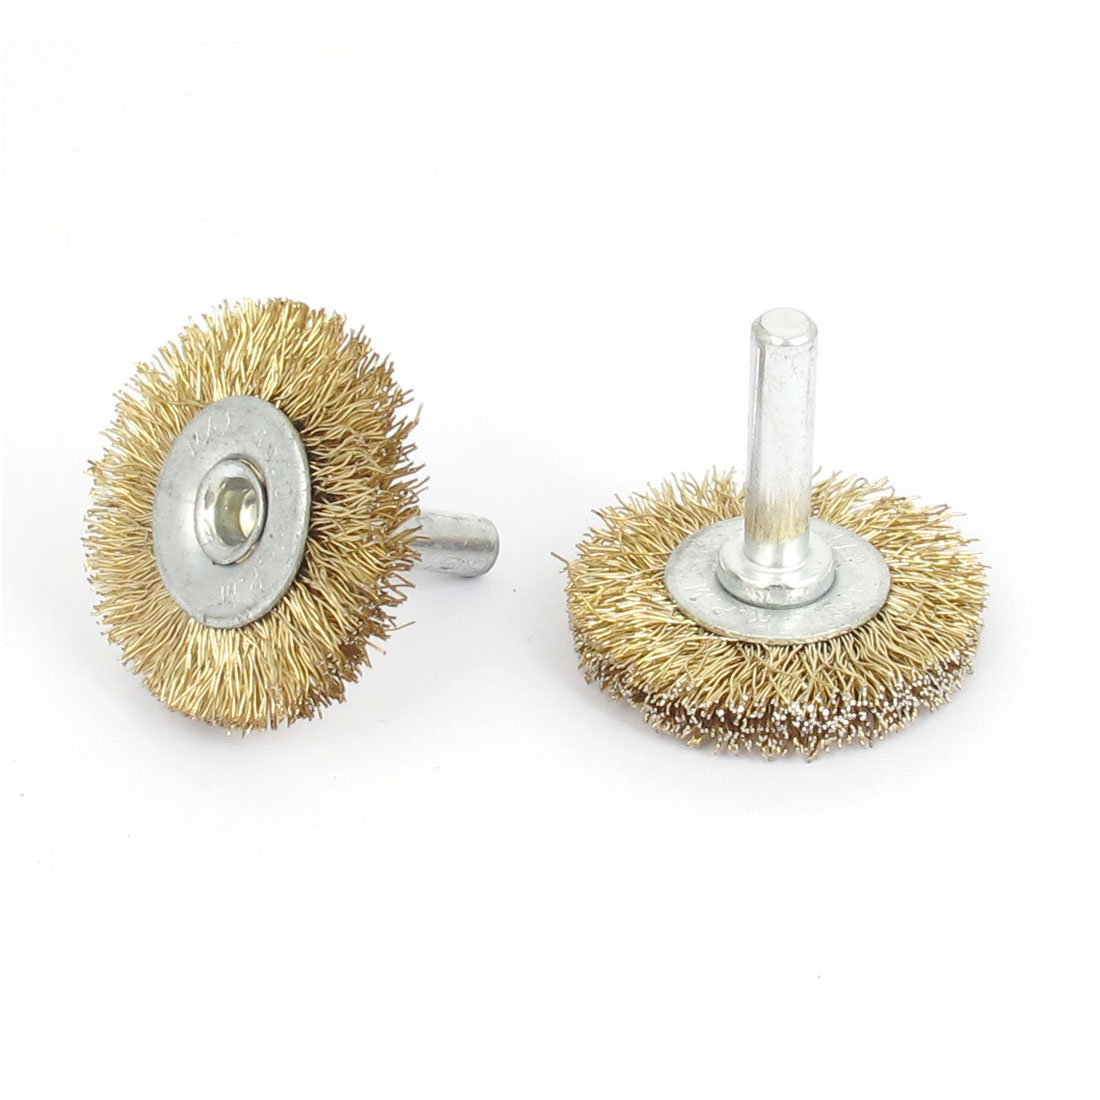 Sourcingmap® 38mm x 6mm Steel Wire Polishing Buffing Wheels Grinding Brushes 2pcs US-SA-AJD-164258